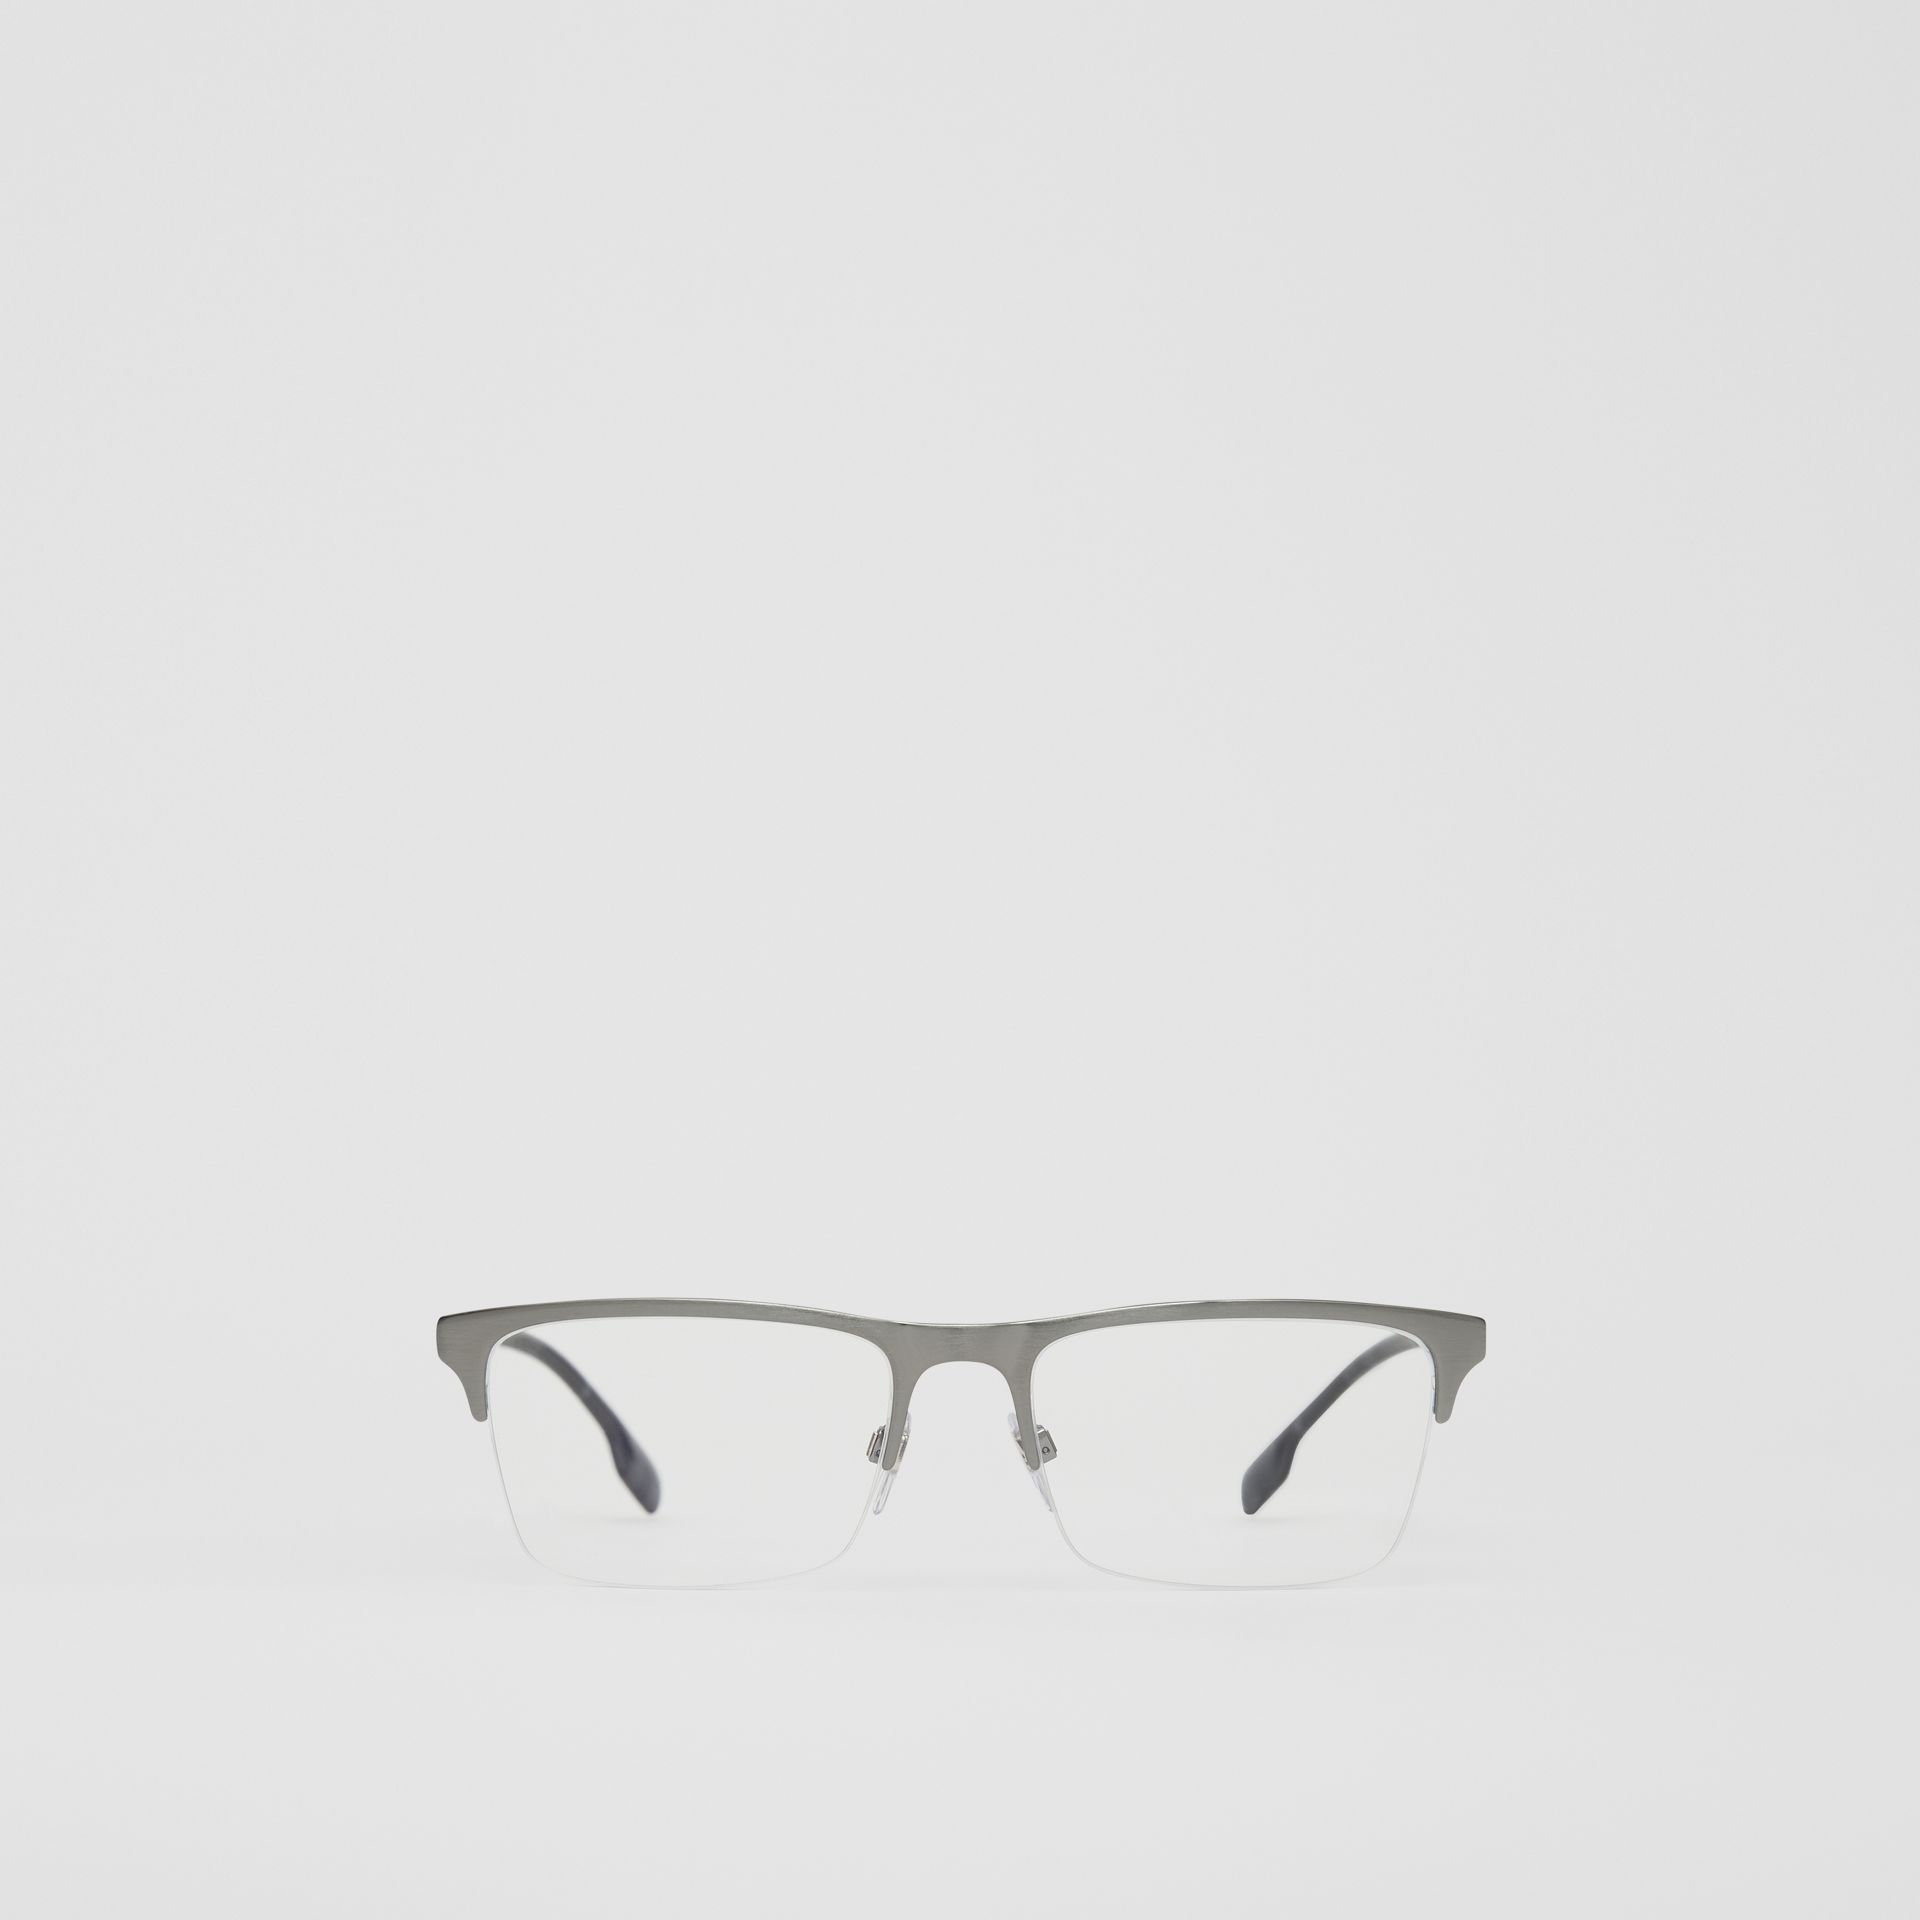 Rectangular Optical Frames in Gunmetal Grey - Men | Burberry United Kingdom - gallery image 0